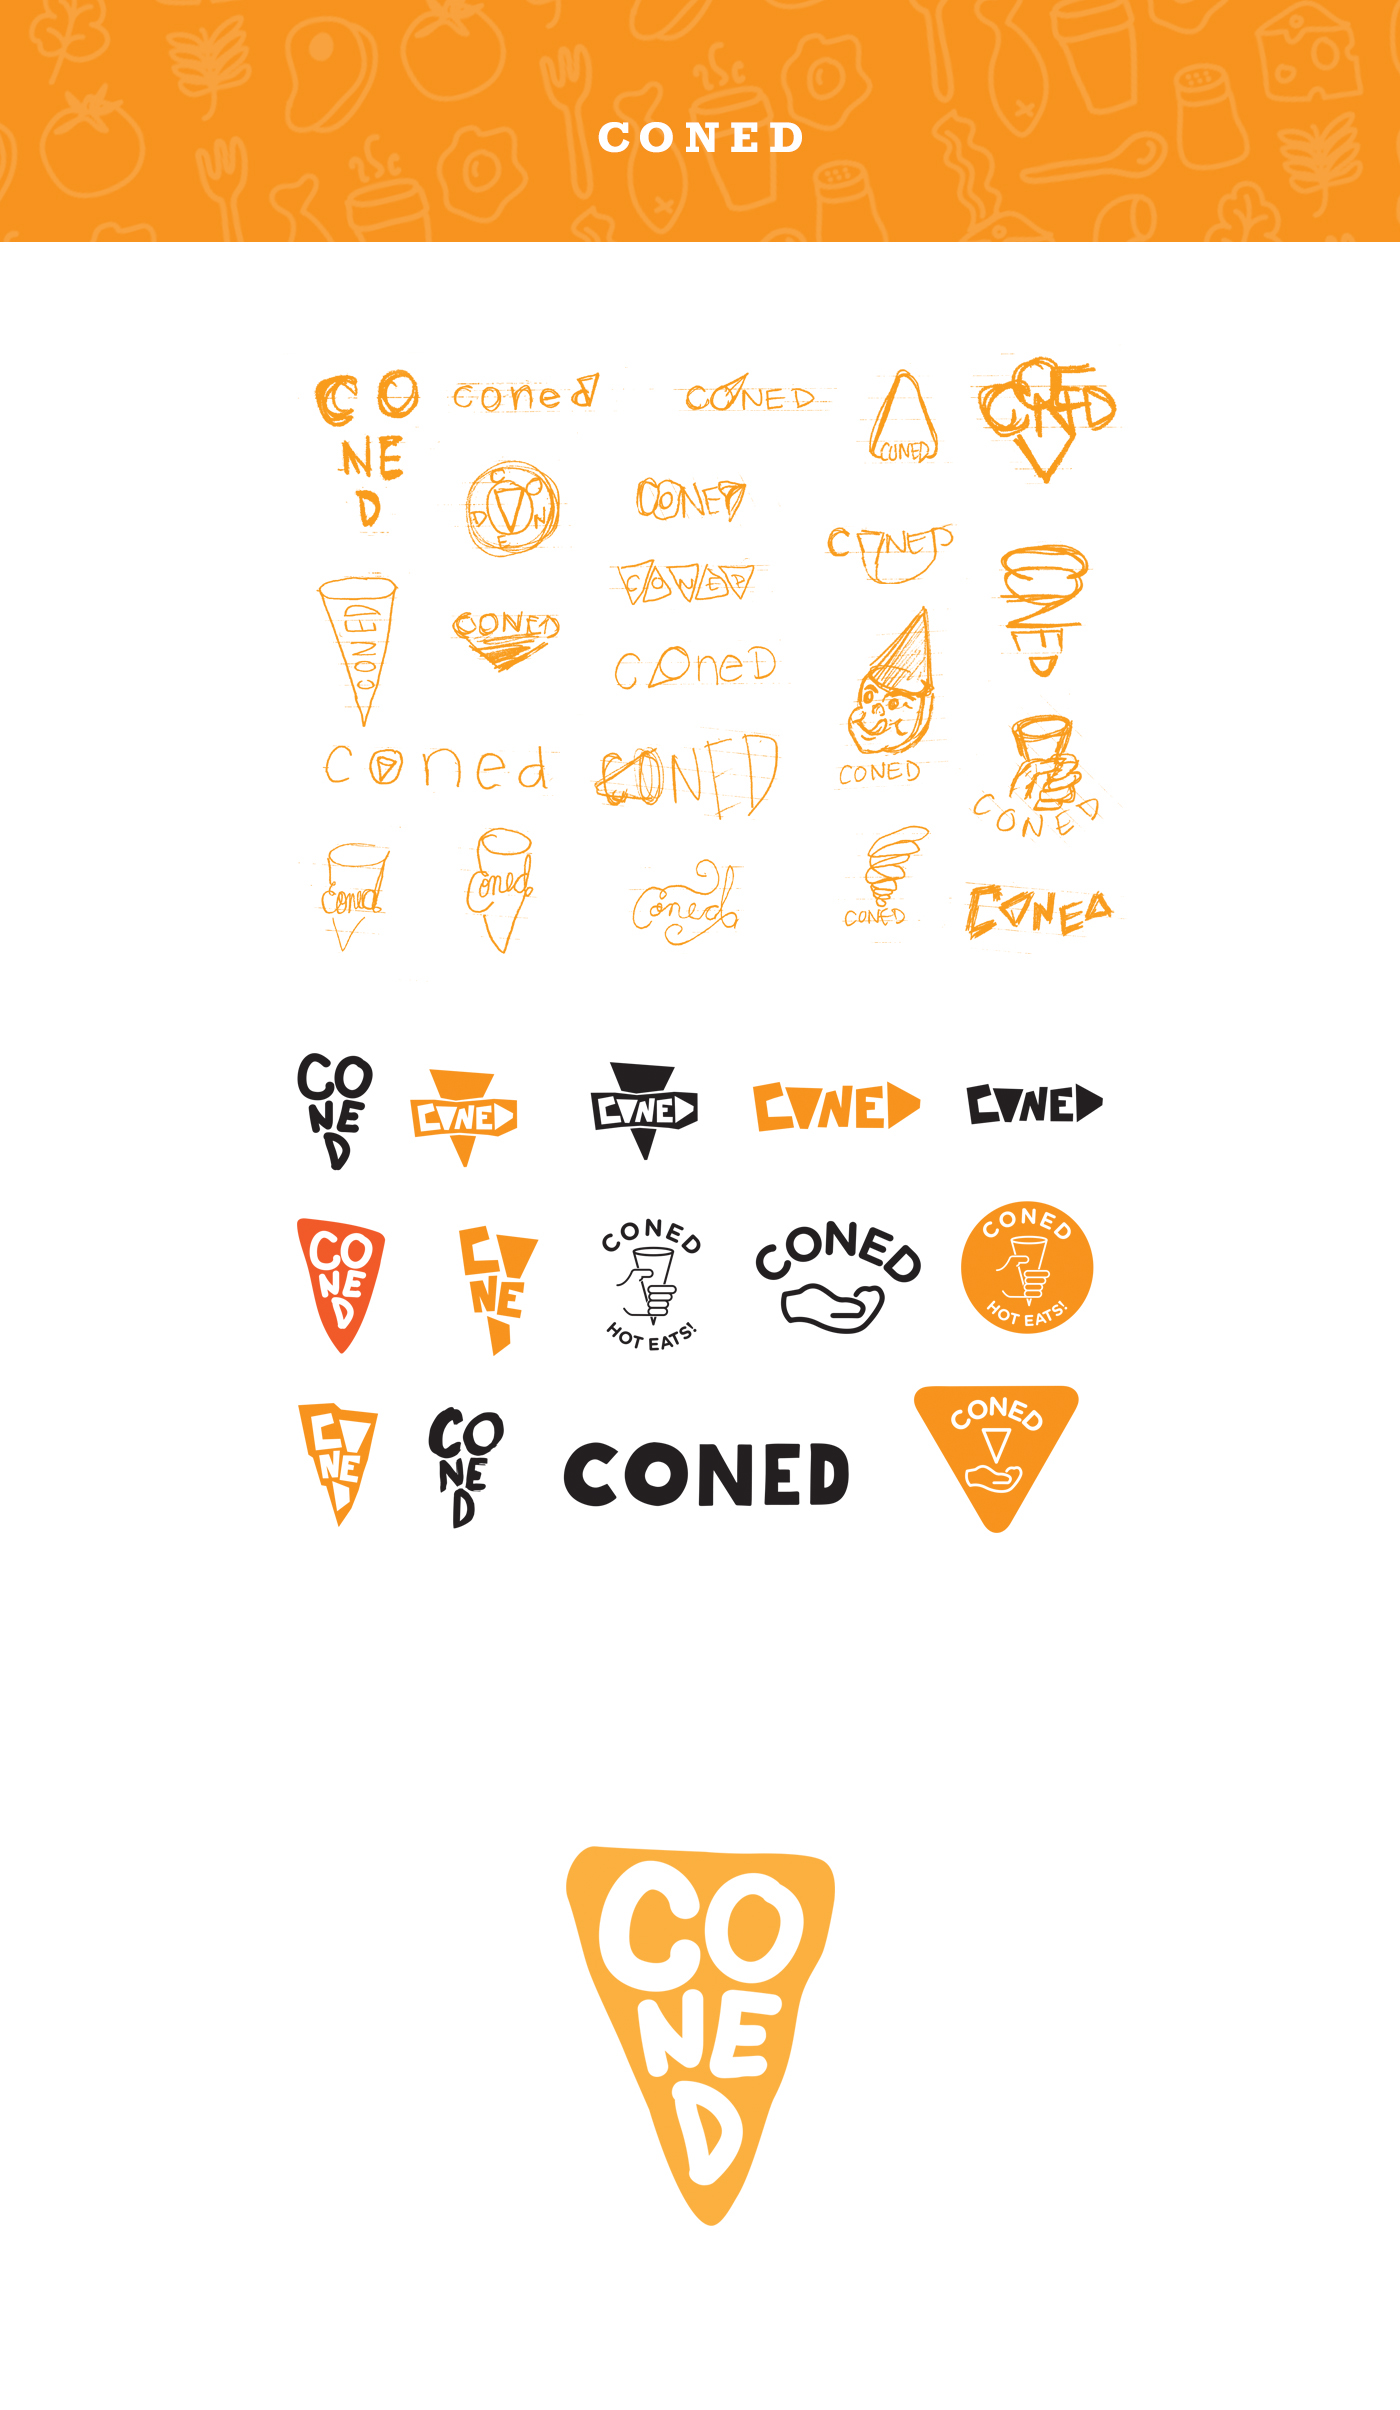 Coned on Behance